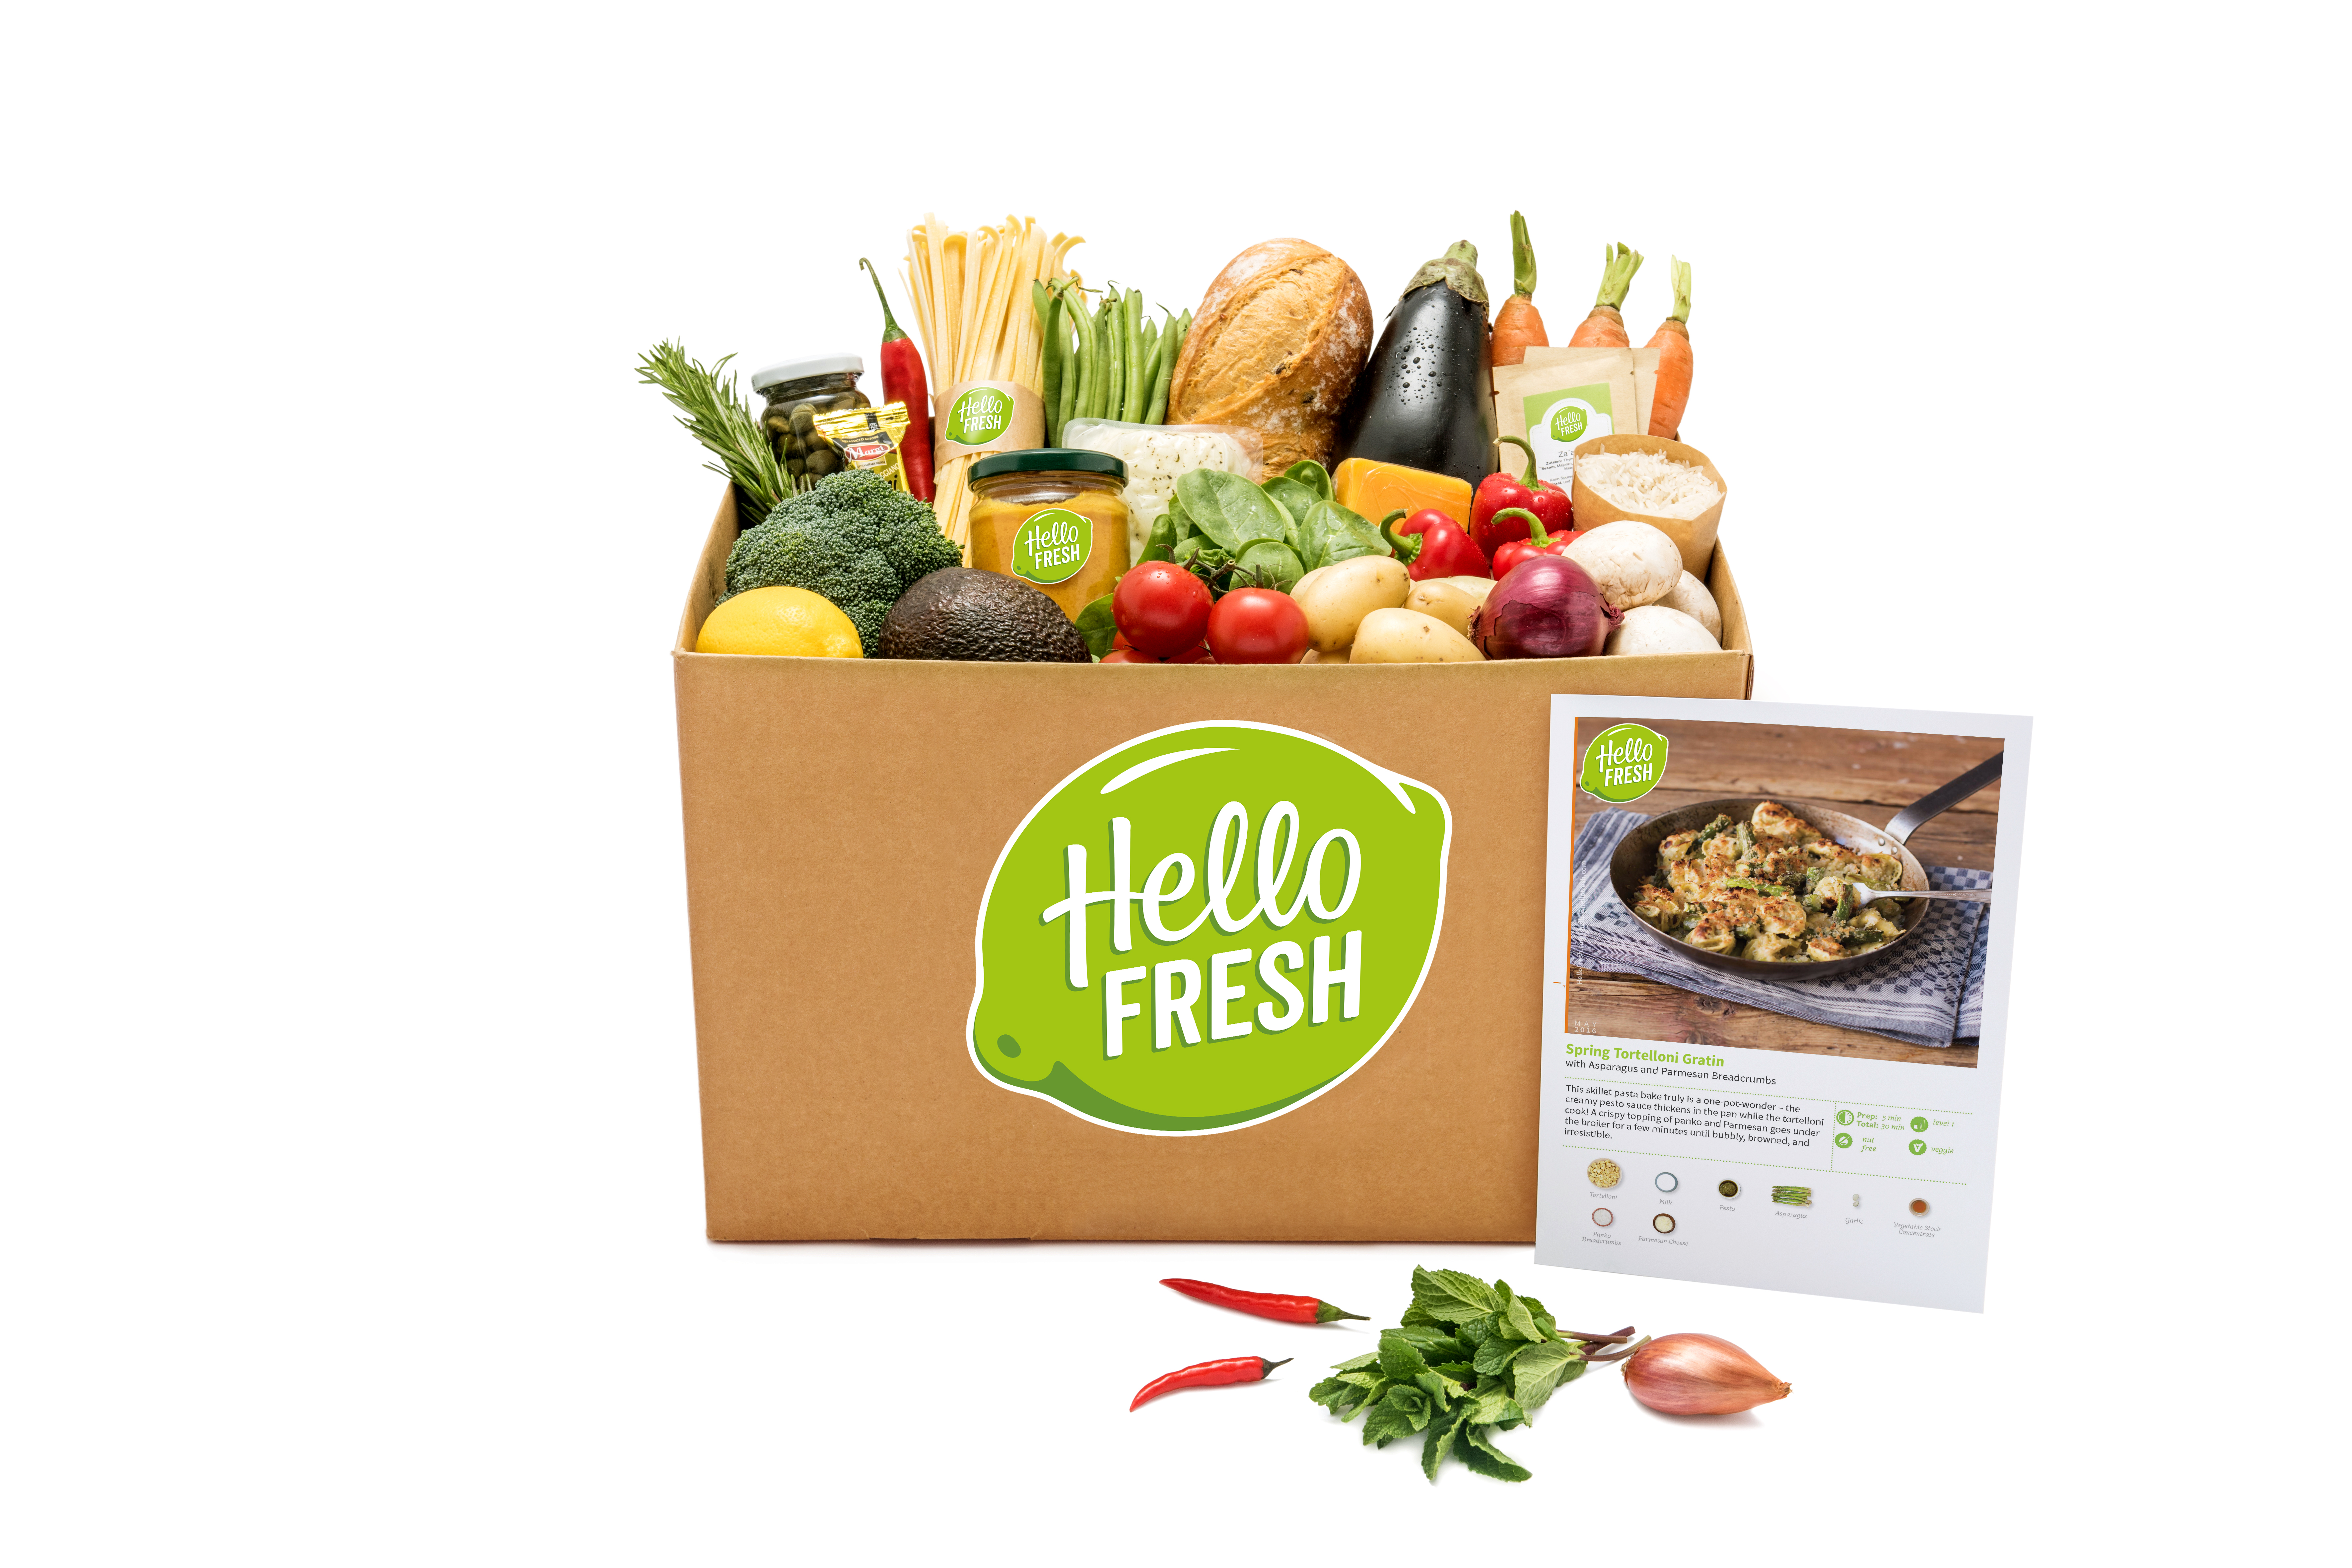 https://cdn.hellofresh.com/au/cms/press/HF_Box_Veggie.jpg